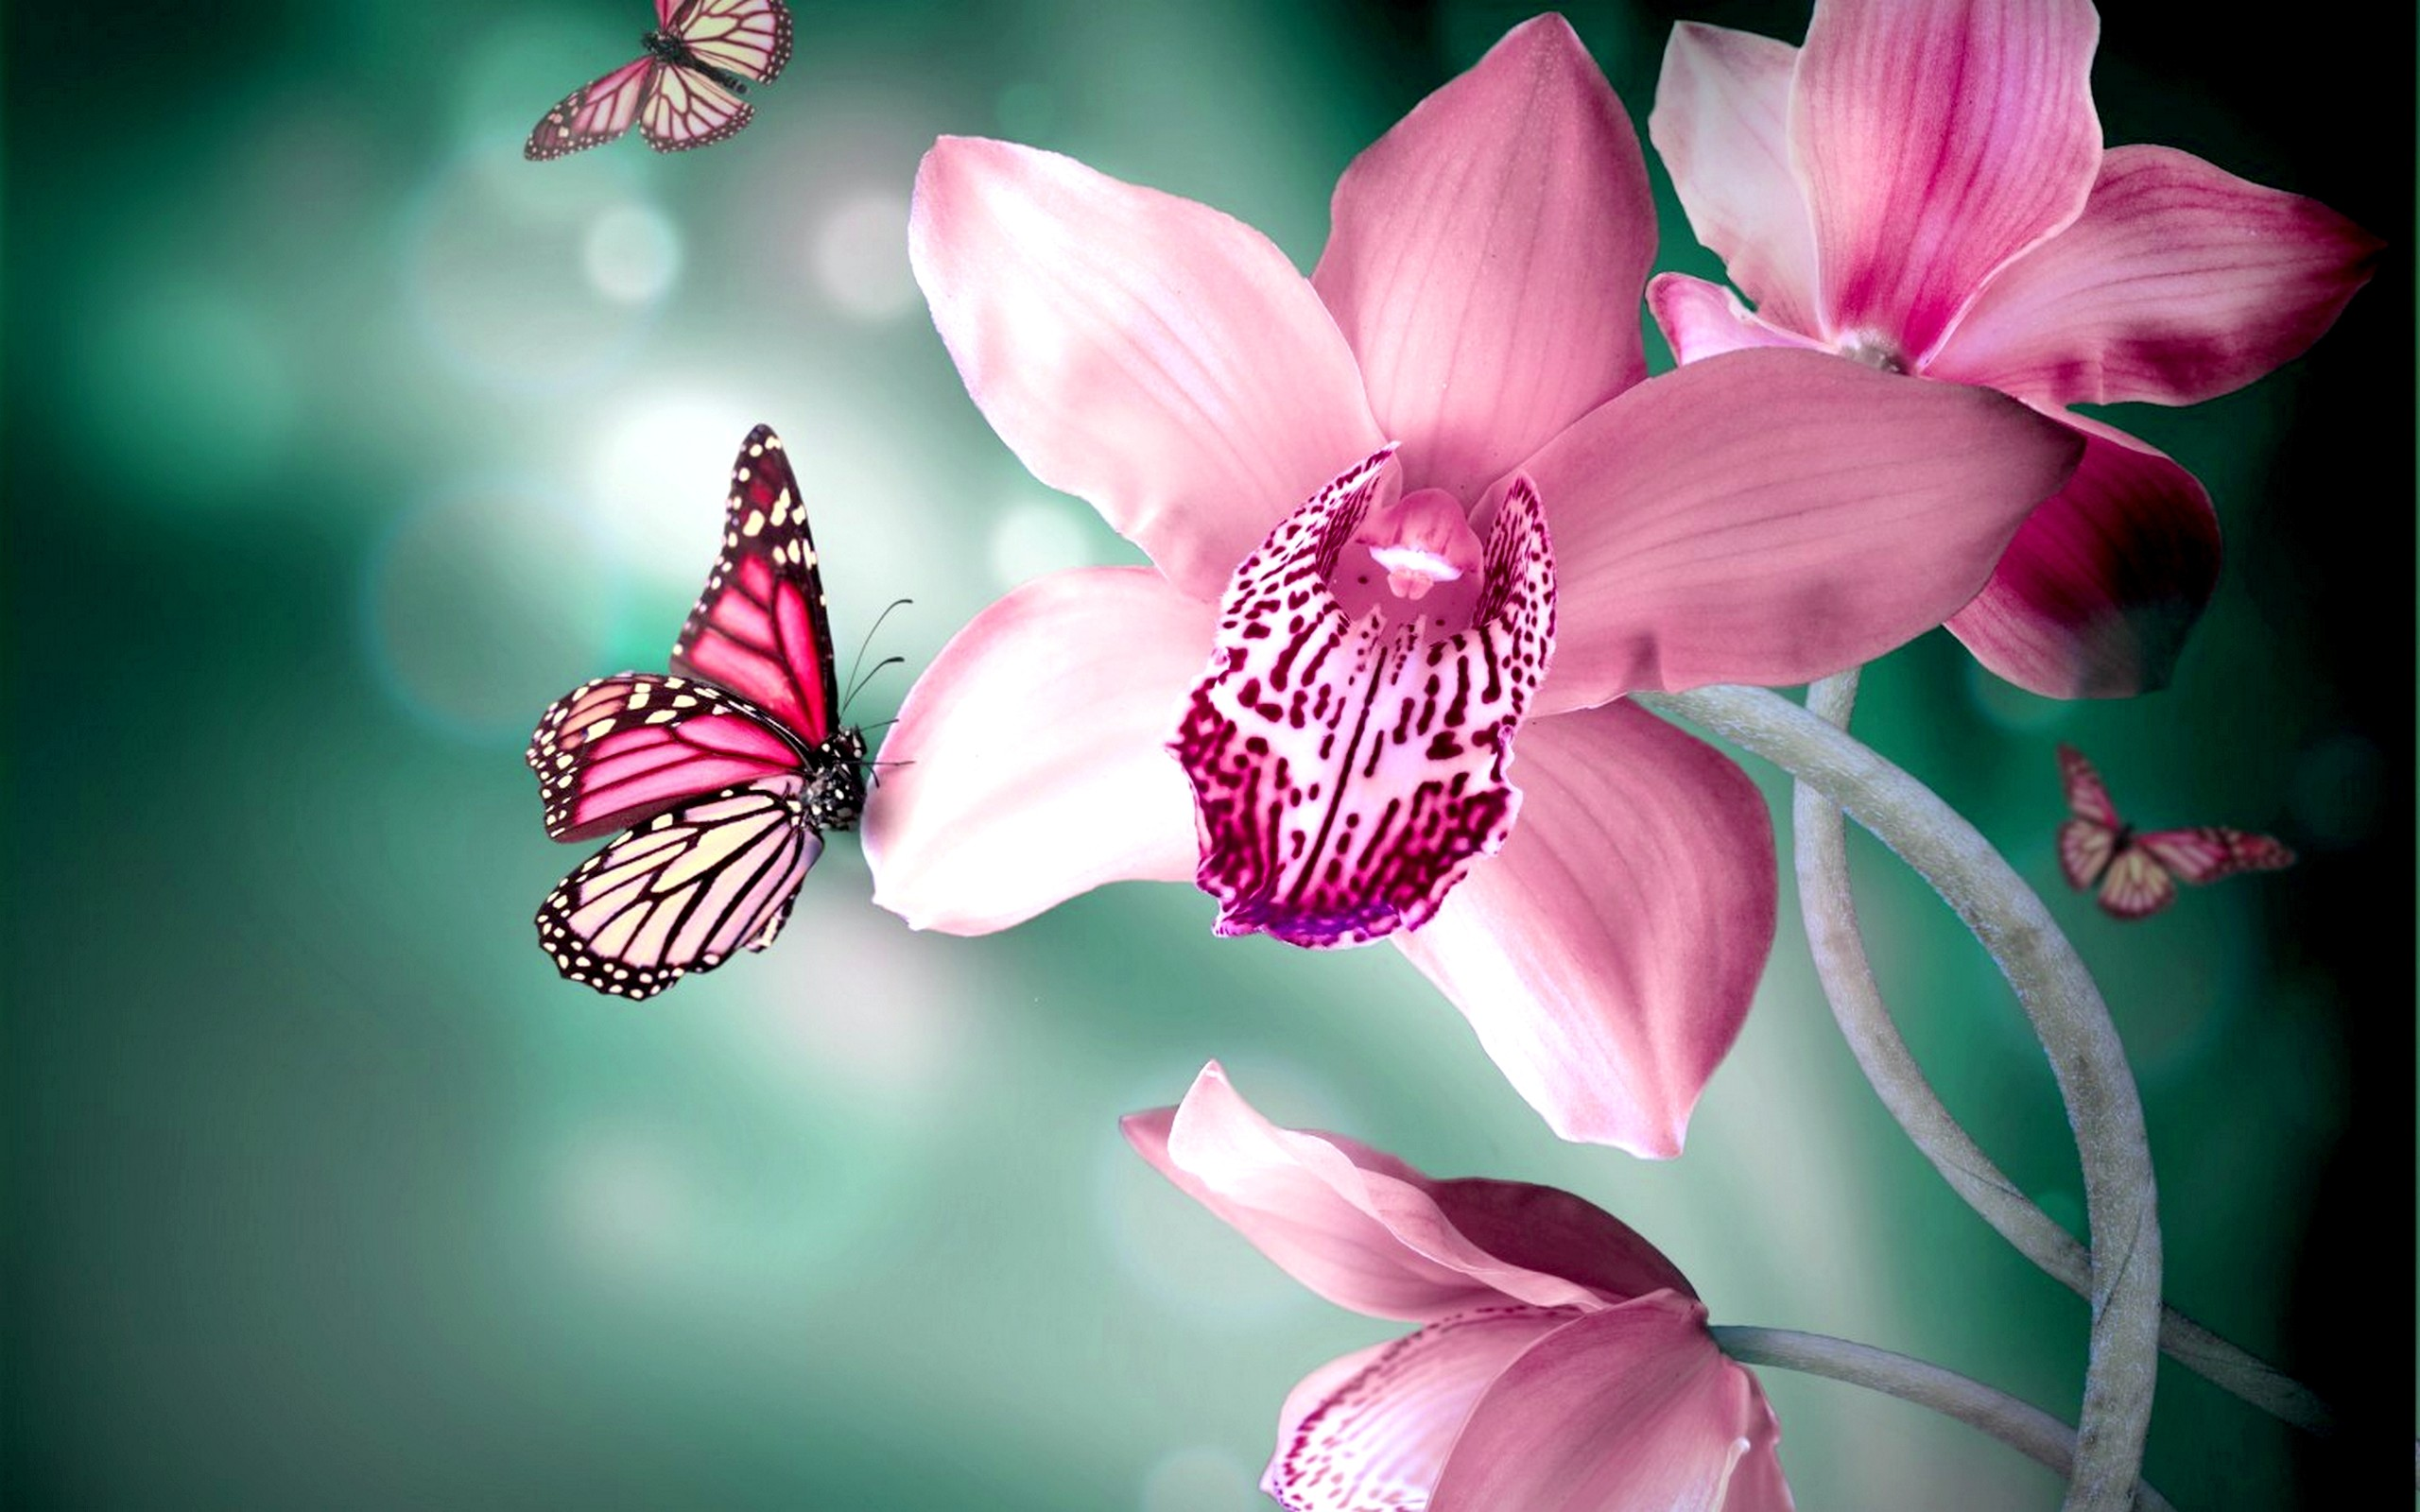 2560x1600 Butterflies Flower - HD Animal Wallpapers - Butterflies Flower